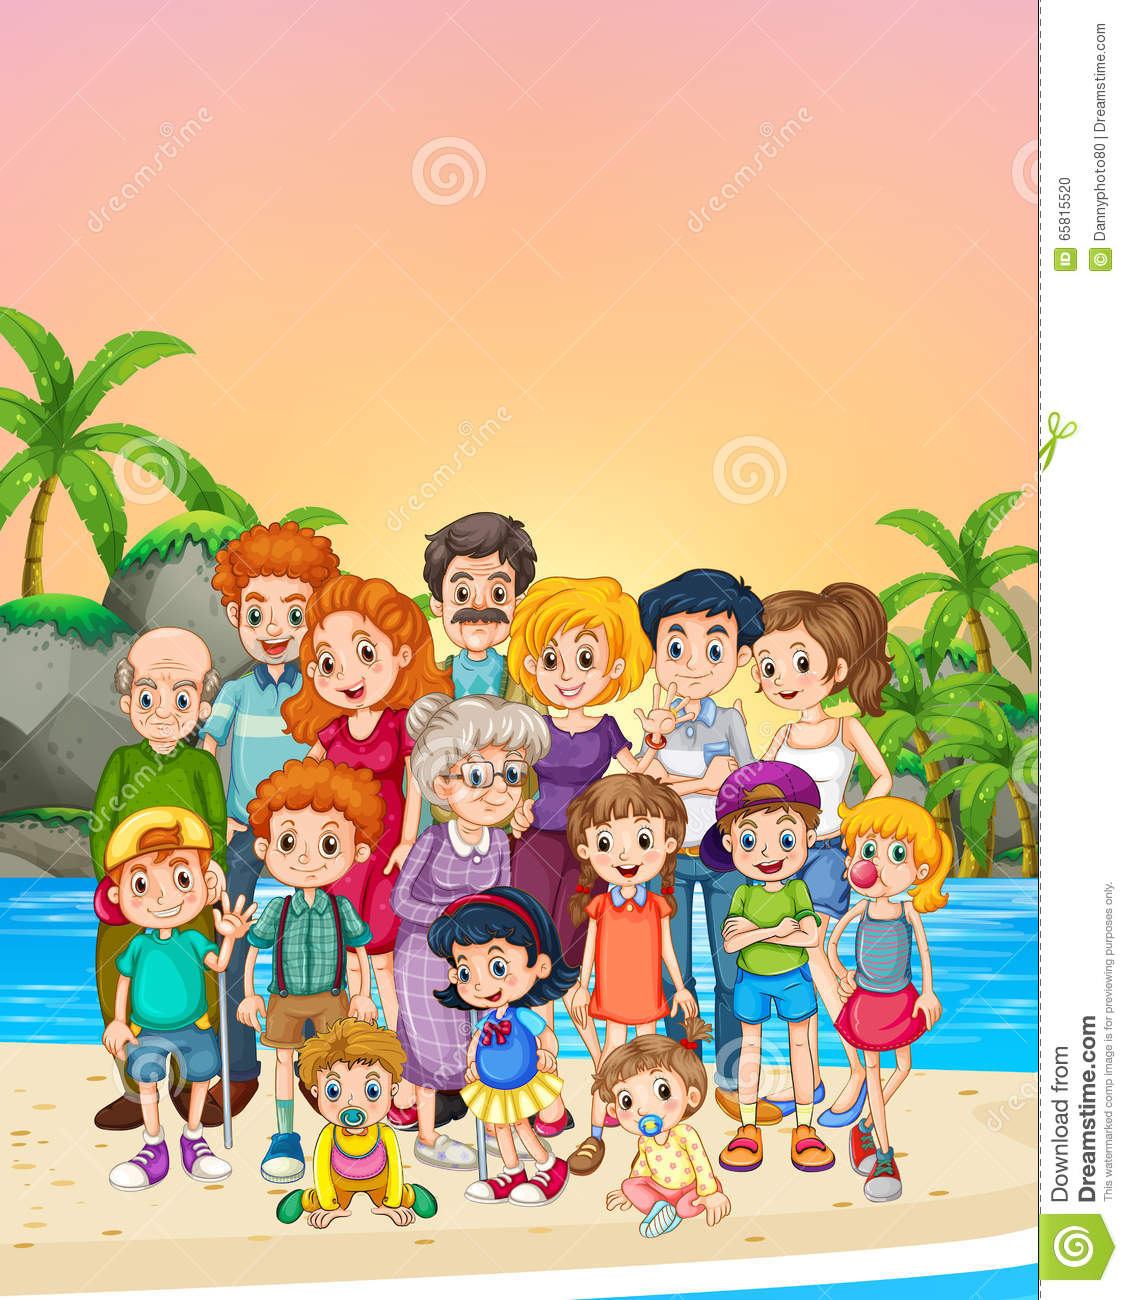 Familly Members Standing On The Beach Stock Vector - Image: 65815520